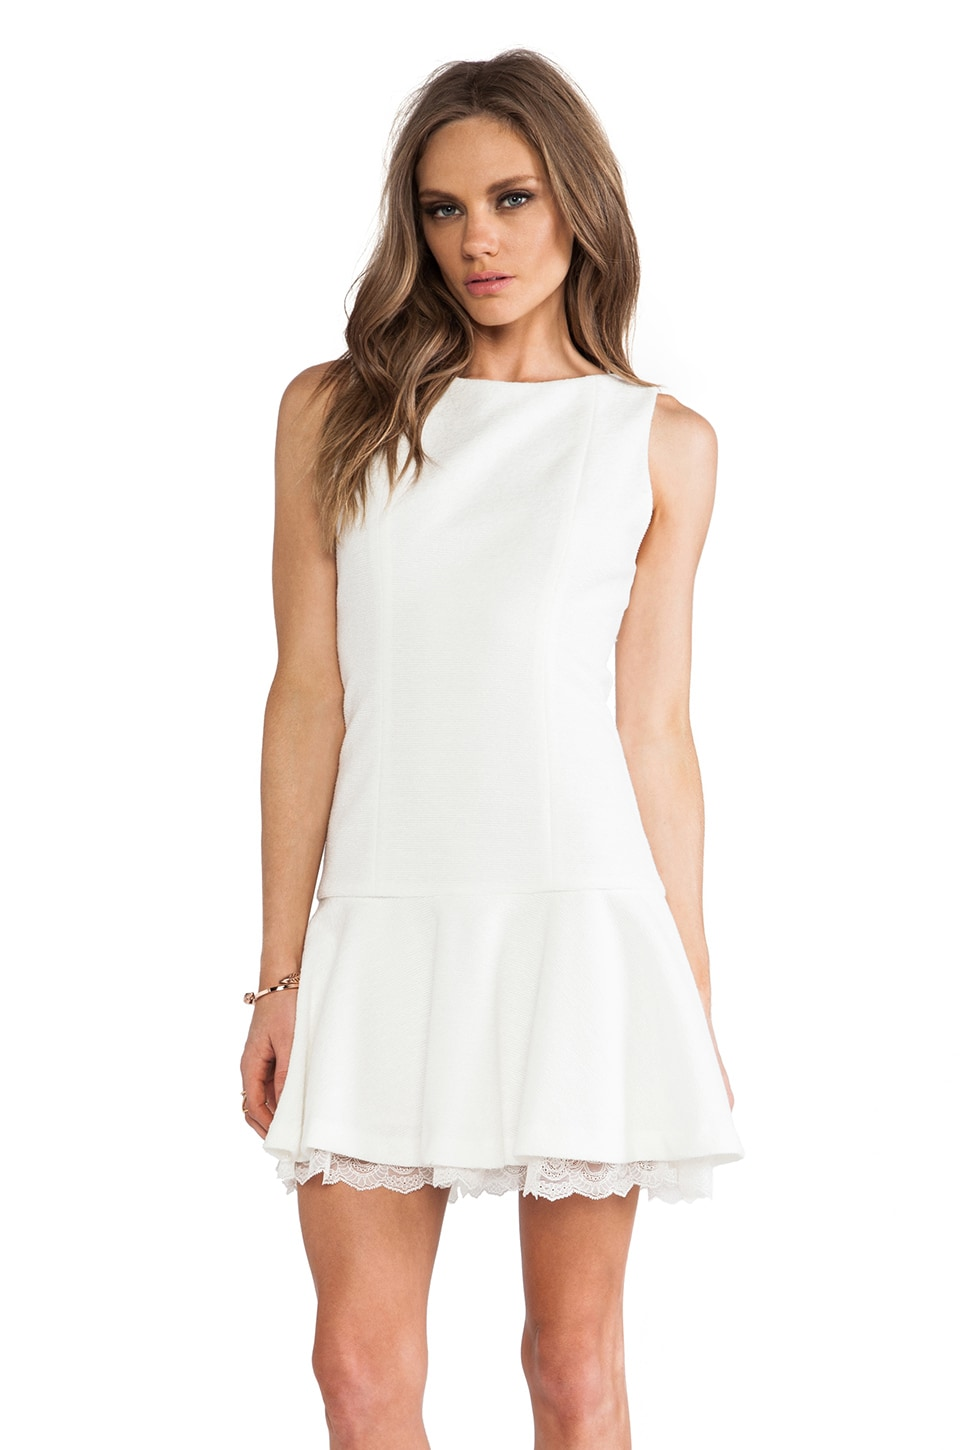 Alice + Olivia Kaya Drop Waist Dress in White